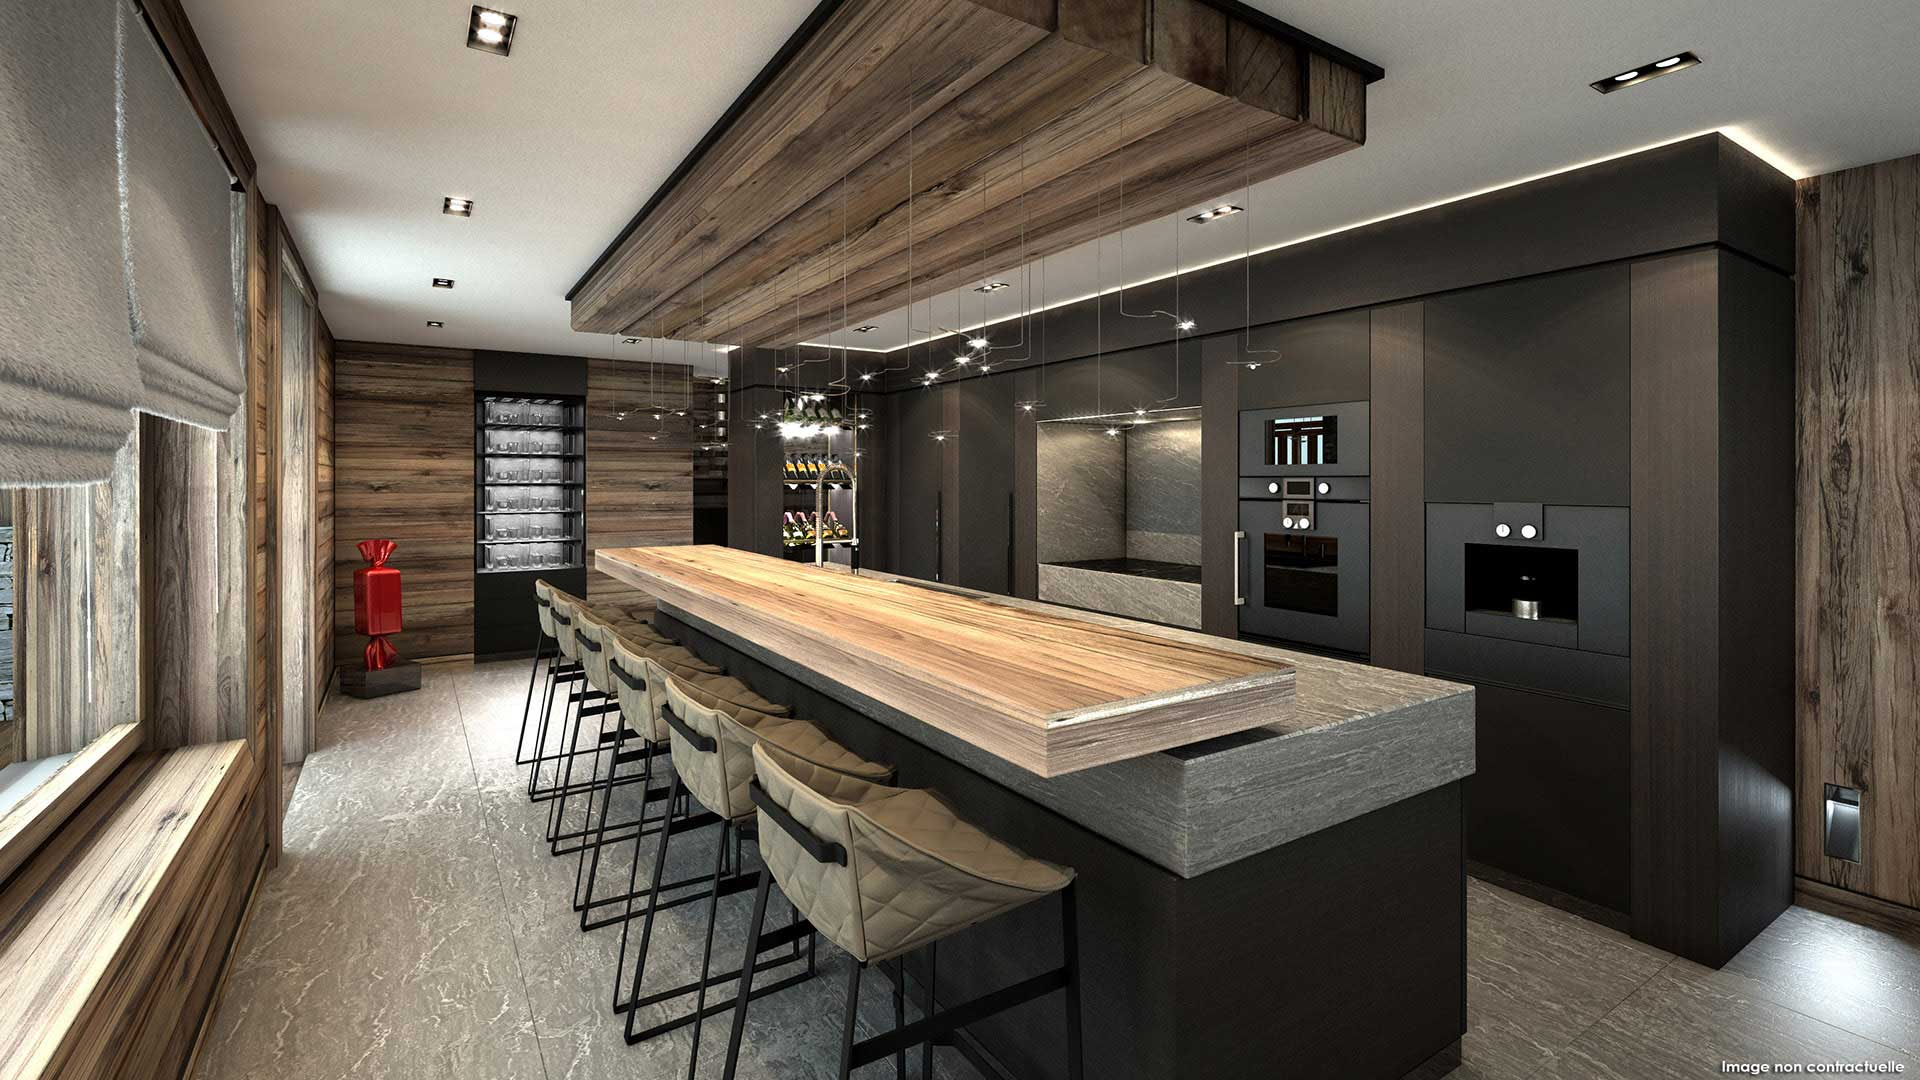 Rendering of a 3D view : kitchen of a luxurious chalet in the mountains.